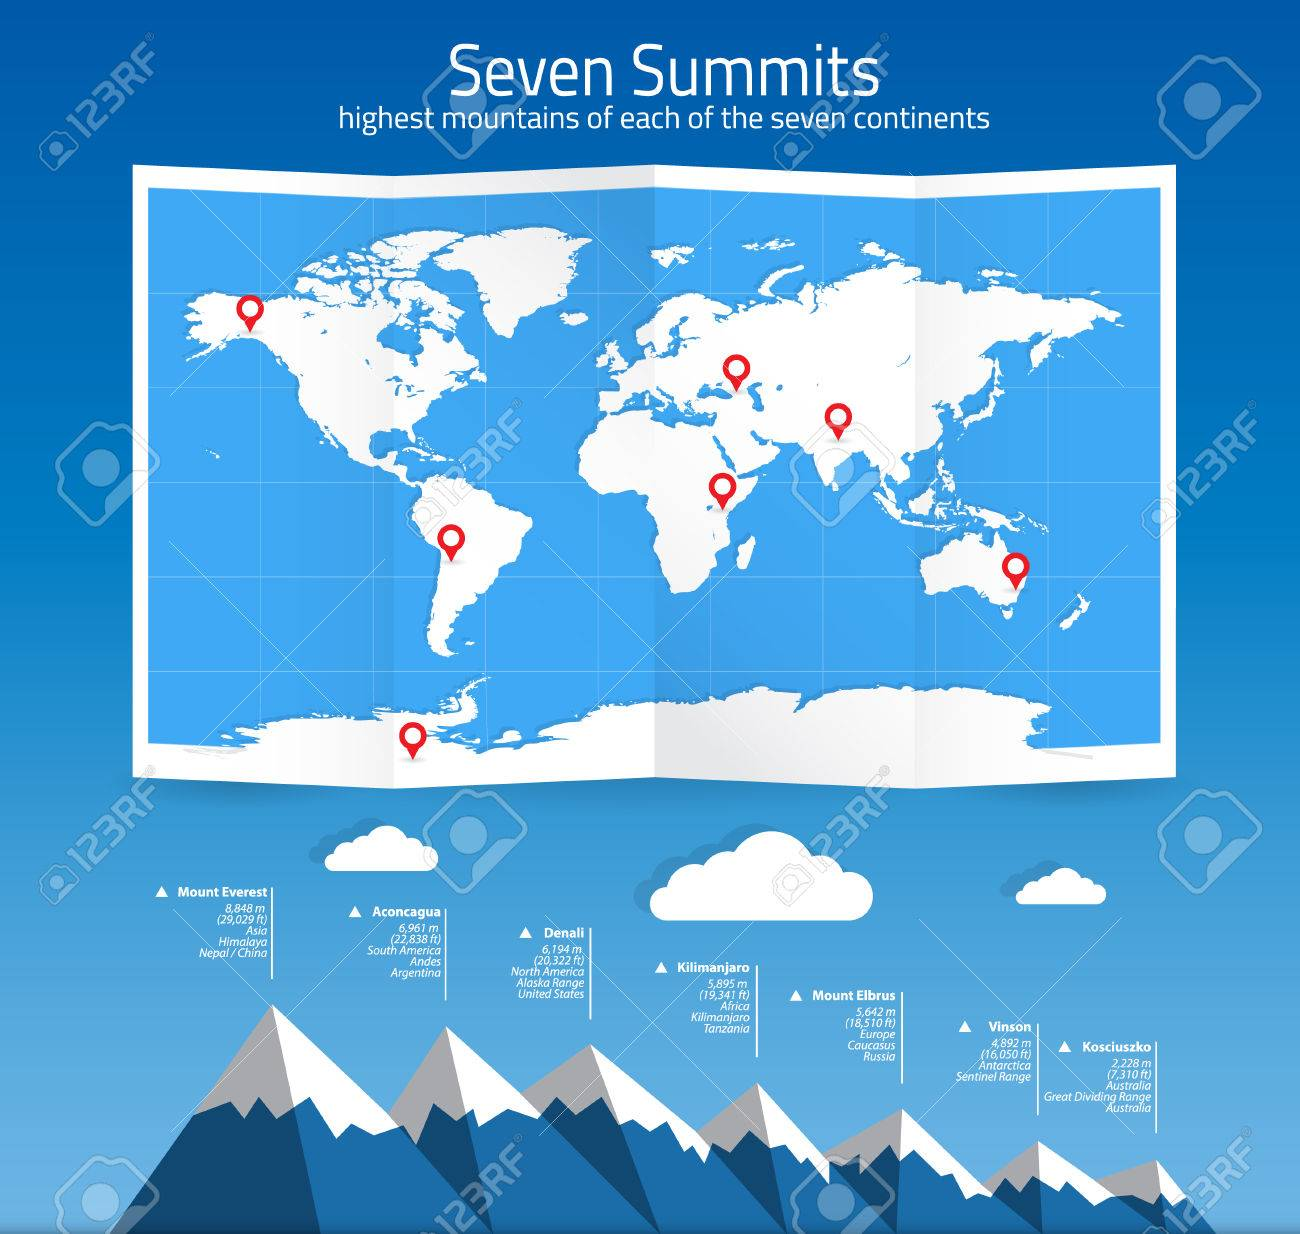 Seven summits map infographic highest mountains on continents seven summits map infographic highest mountains on continents stock vector 60618778 gumiabroncs Gallery